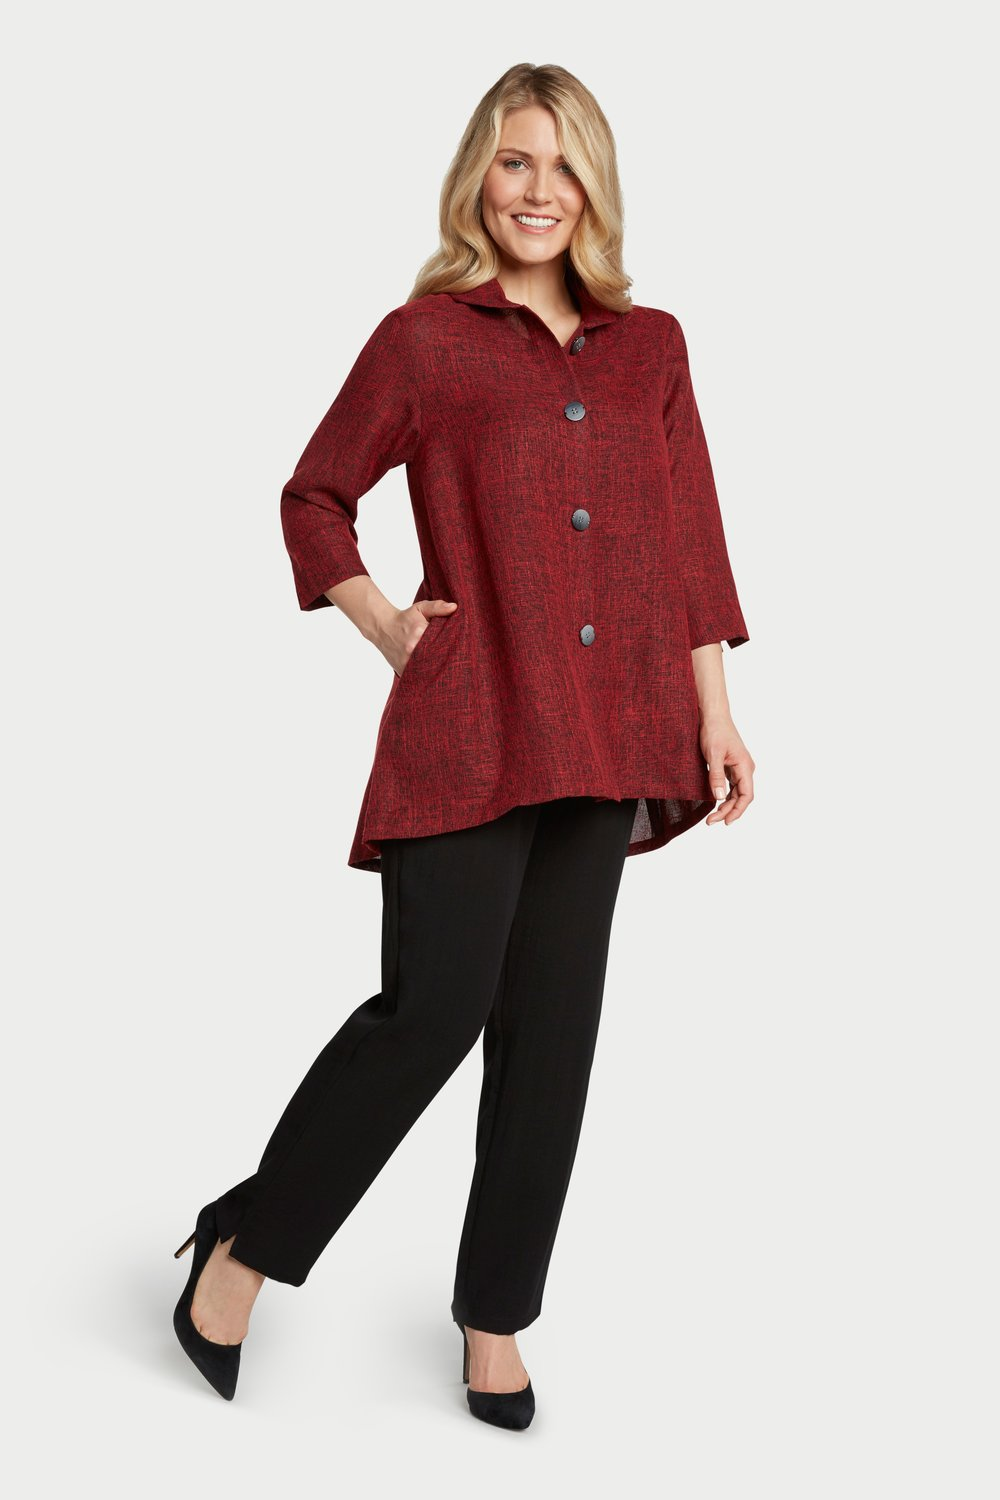 AA7073 - Novelty Button Jacket Red/Black Heathered - JC32